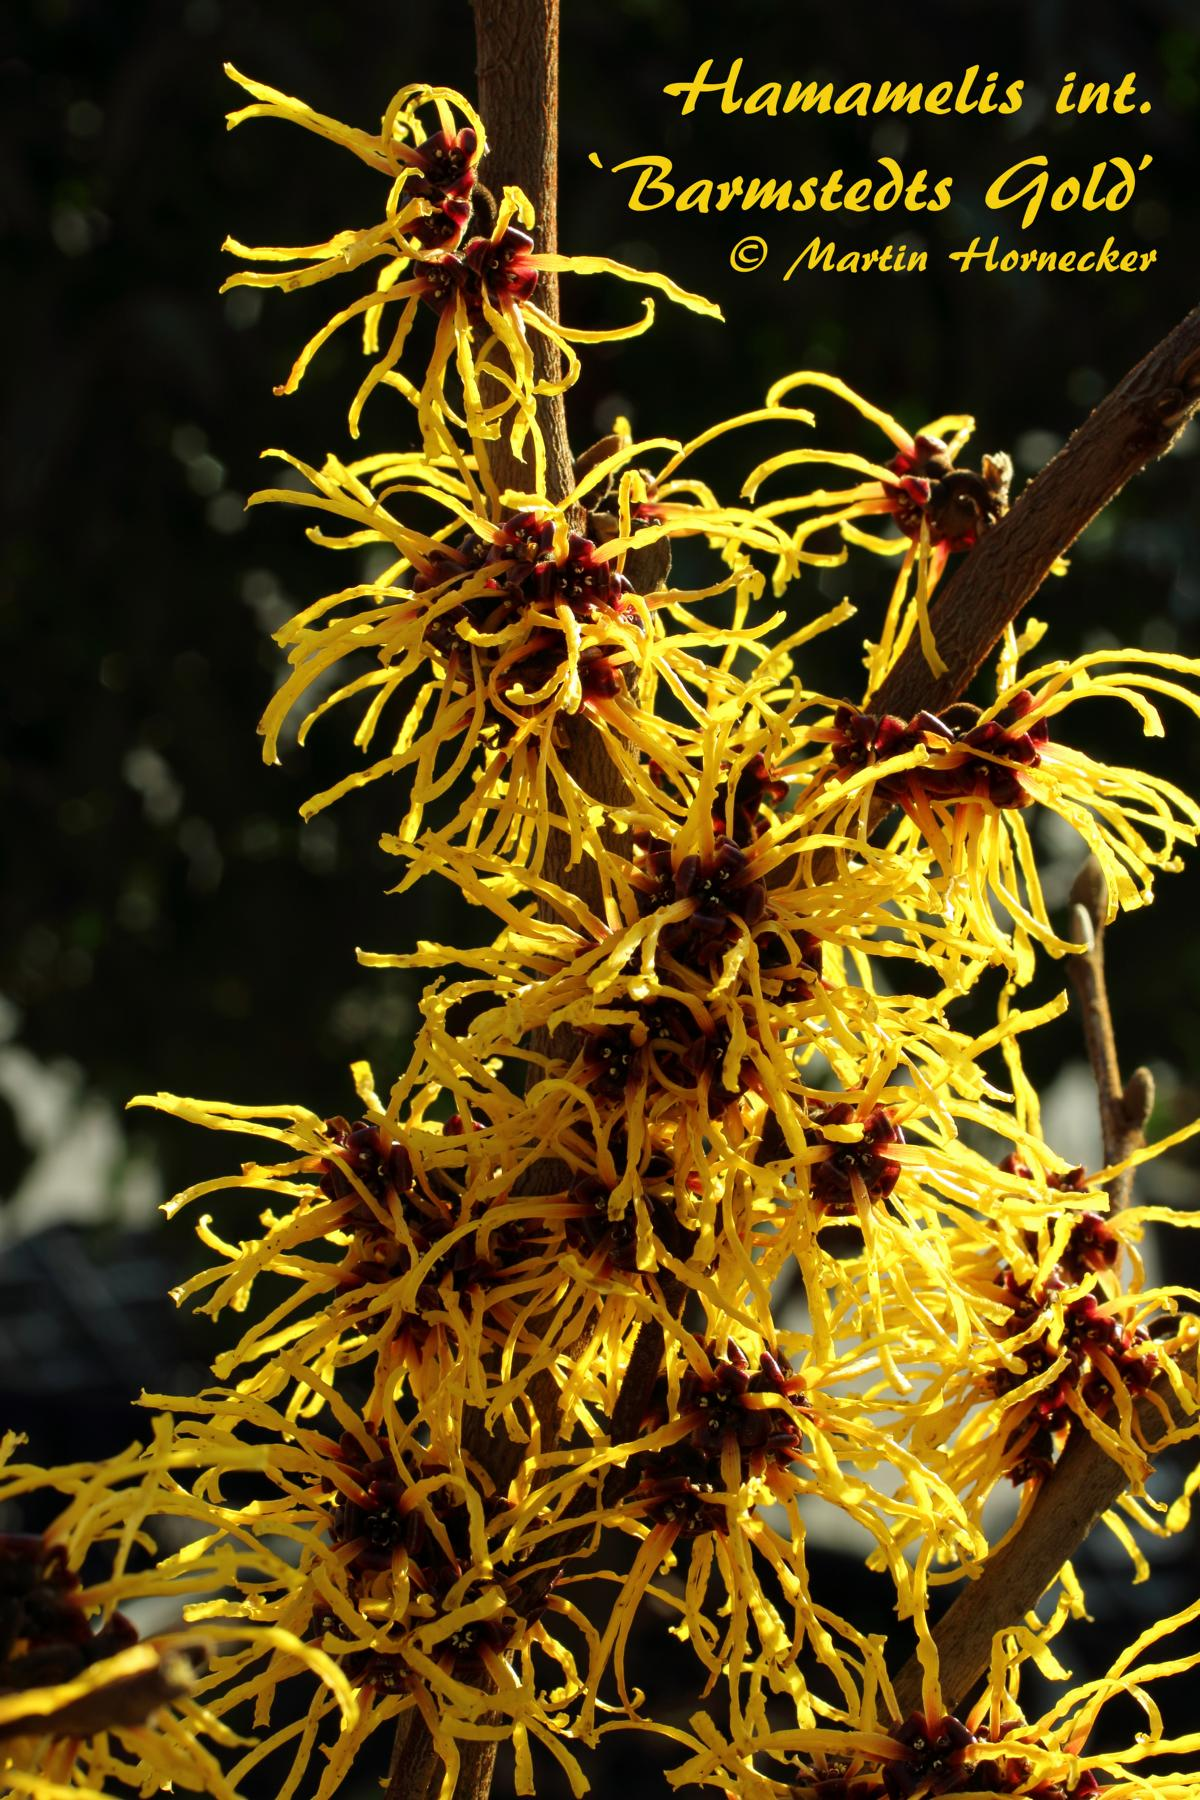 Hamamelis Barmstedts Gold